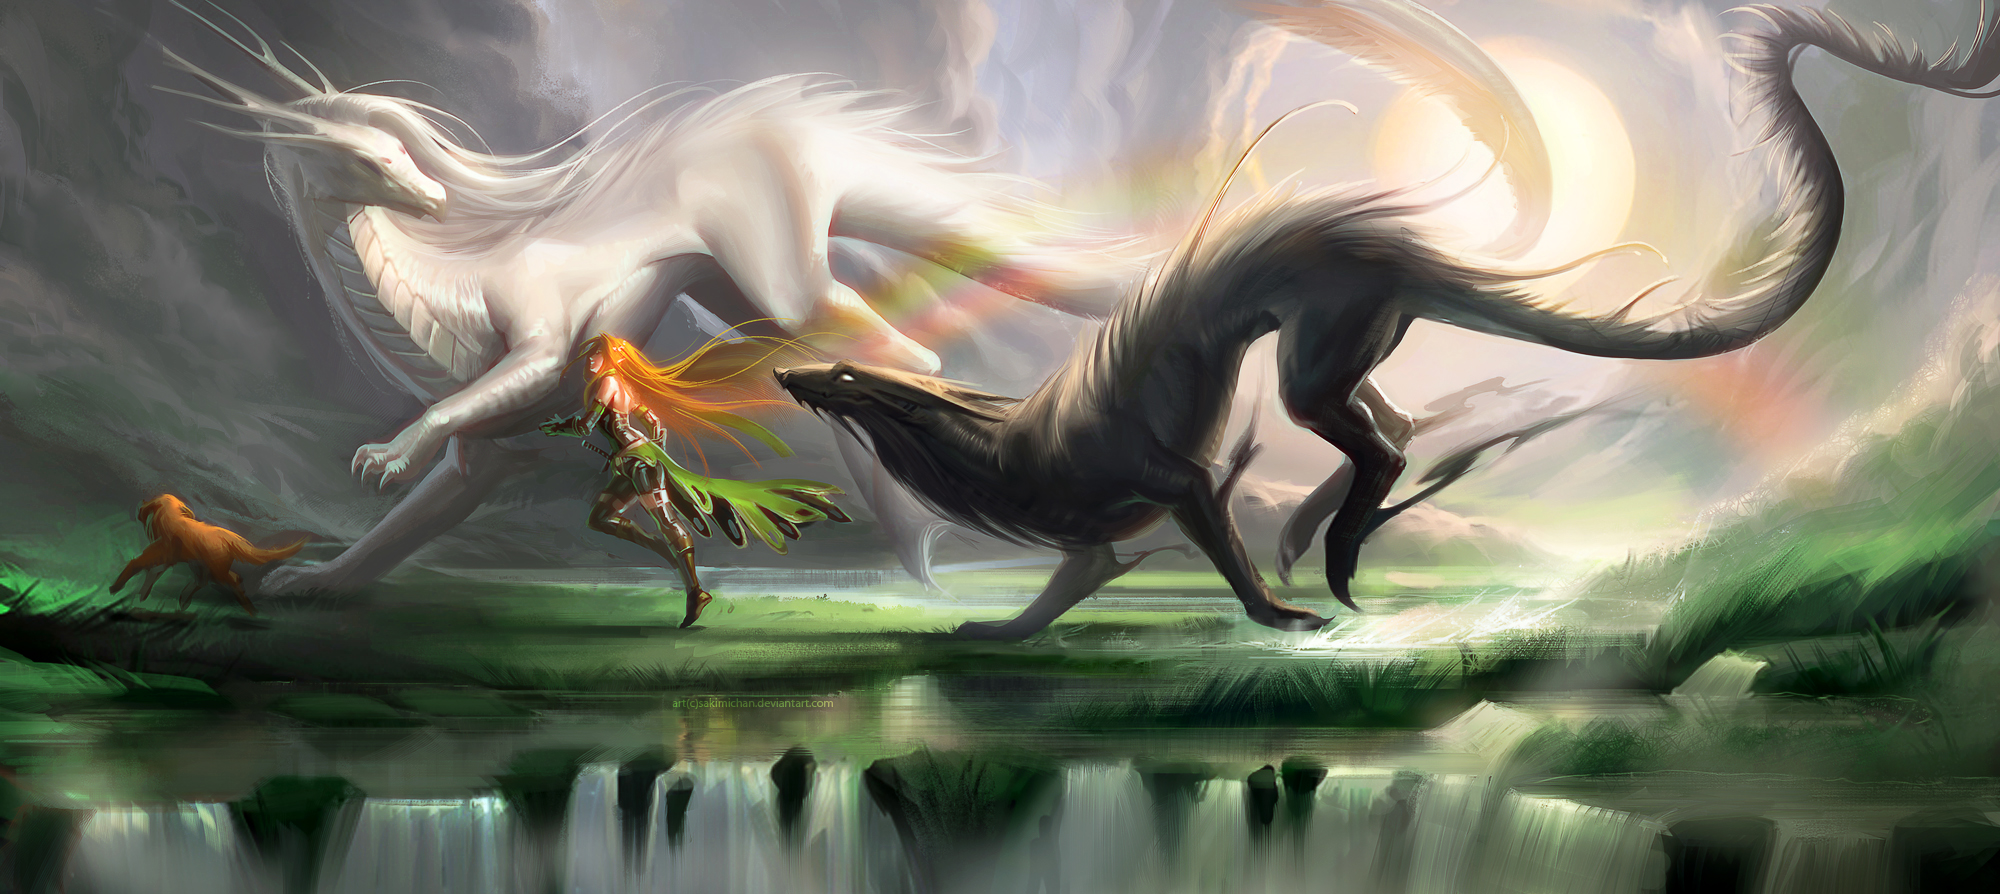 [Image: running_with_spirits_by_sakimichan-d5l84jc.jpg]